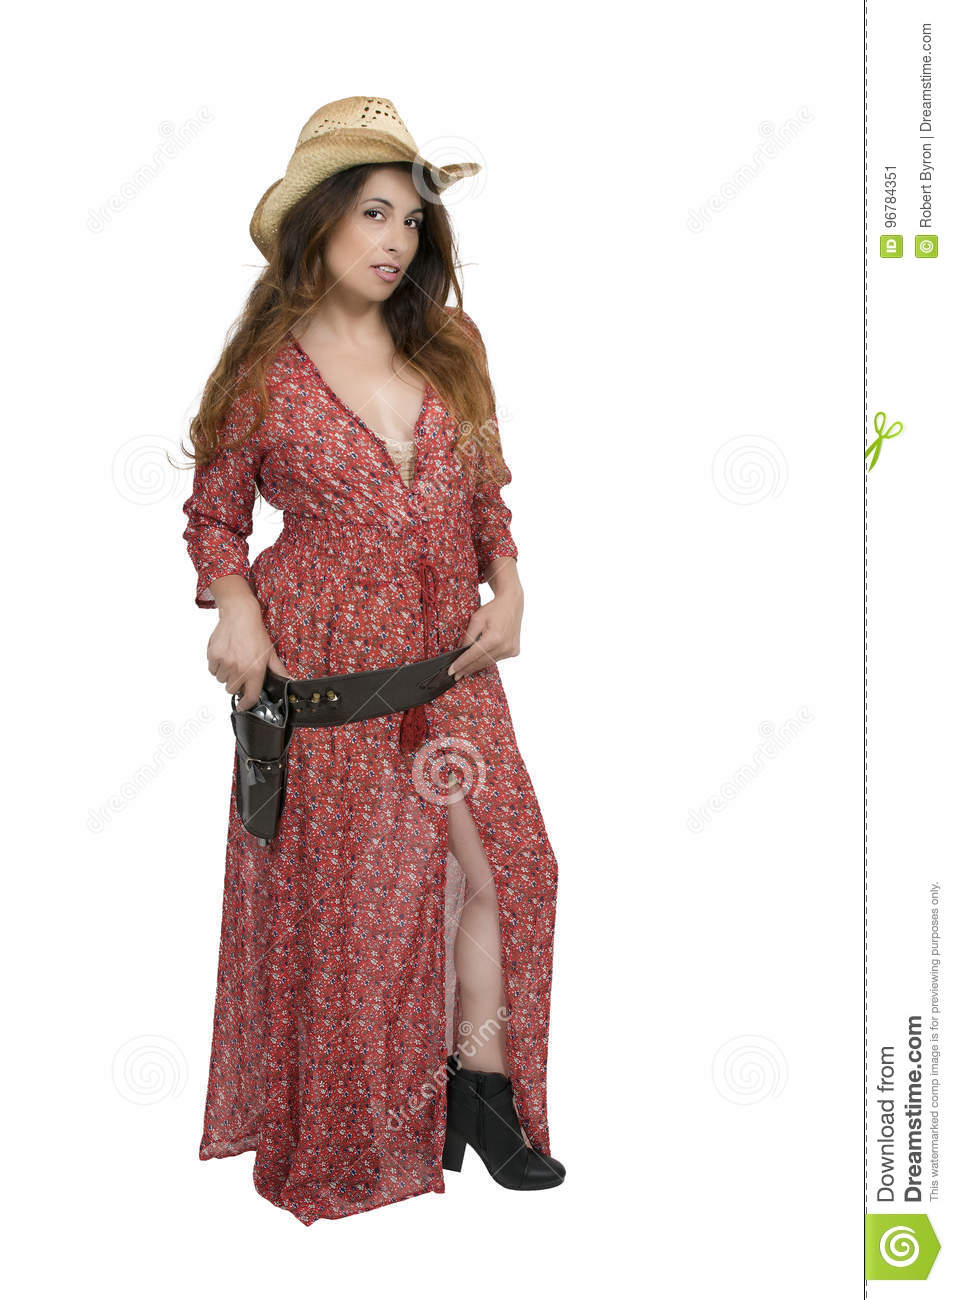 e55604abbae Cowgirl with relvolver stock image. Image of pistol, gunslinger ...